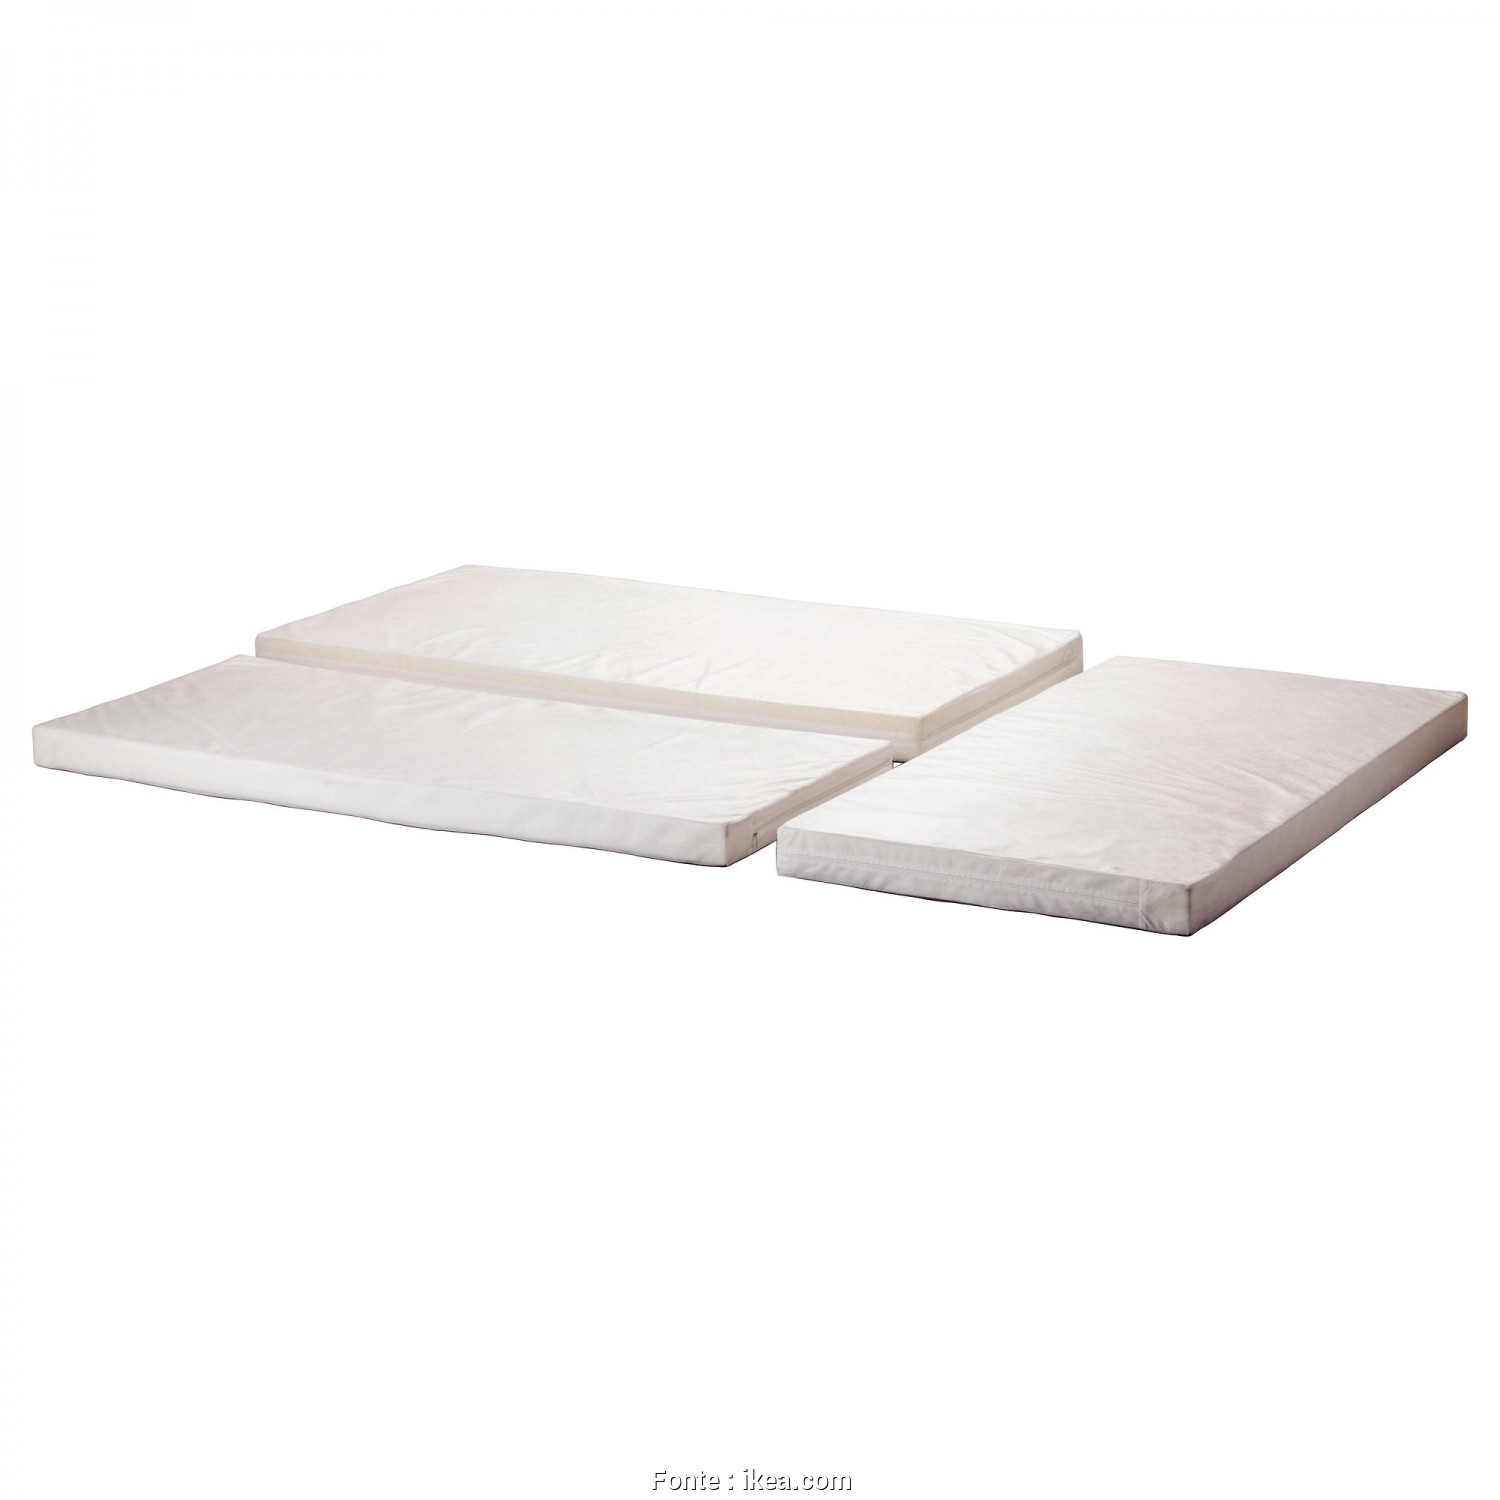 Bello 4 Beddinge Ikea Mattress